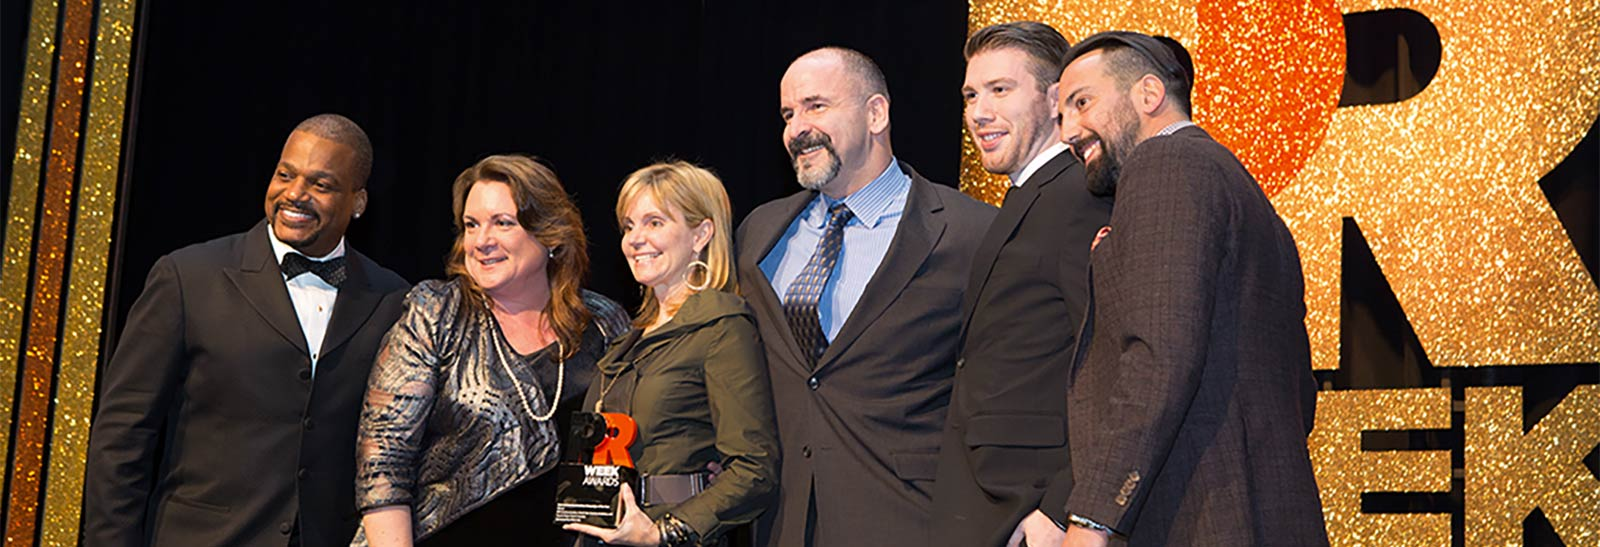 """ROI Receives PR Weekly Award """"Best Internal Communications Campaign of the Year"""""""